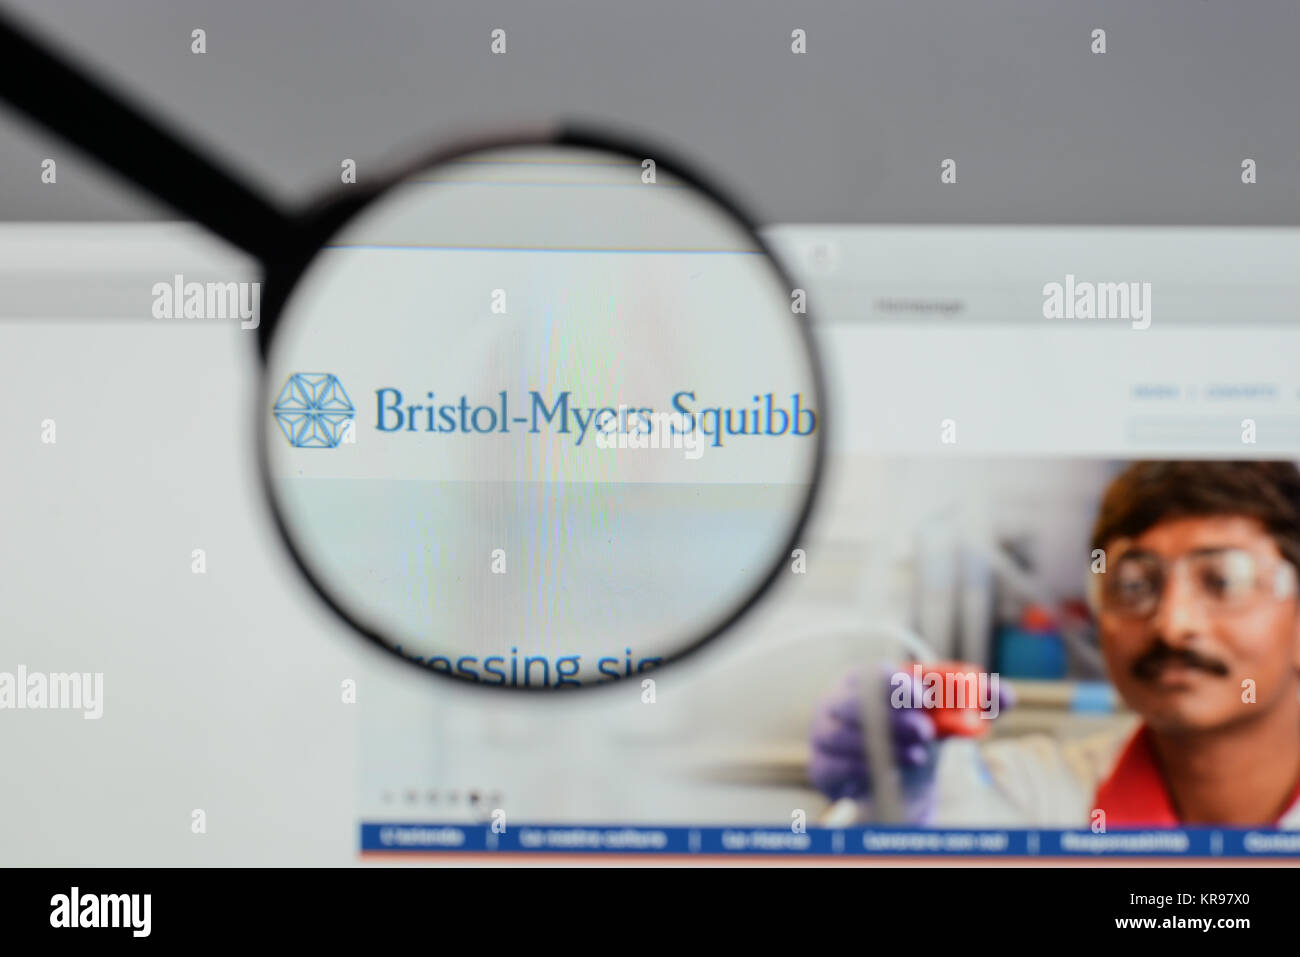 Bristol Myers Squibb Stock Photos and Images